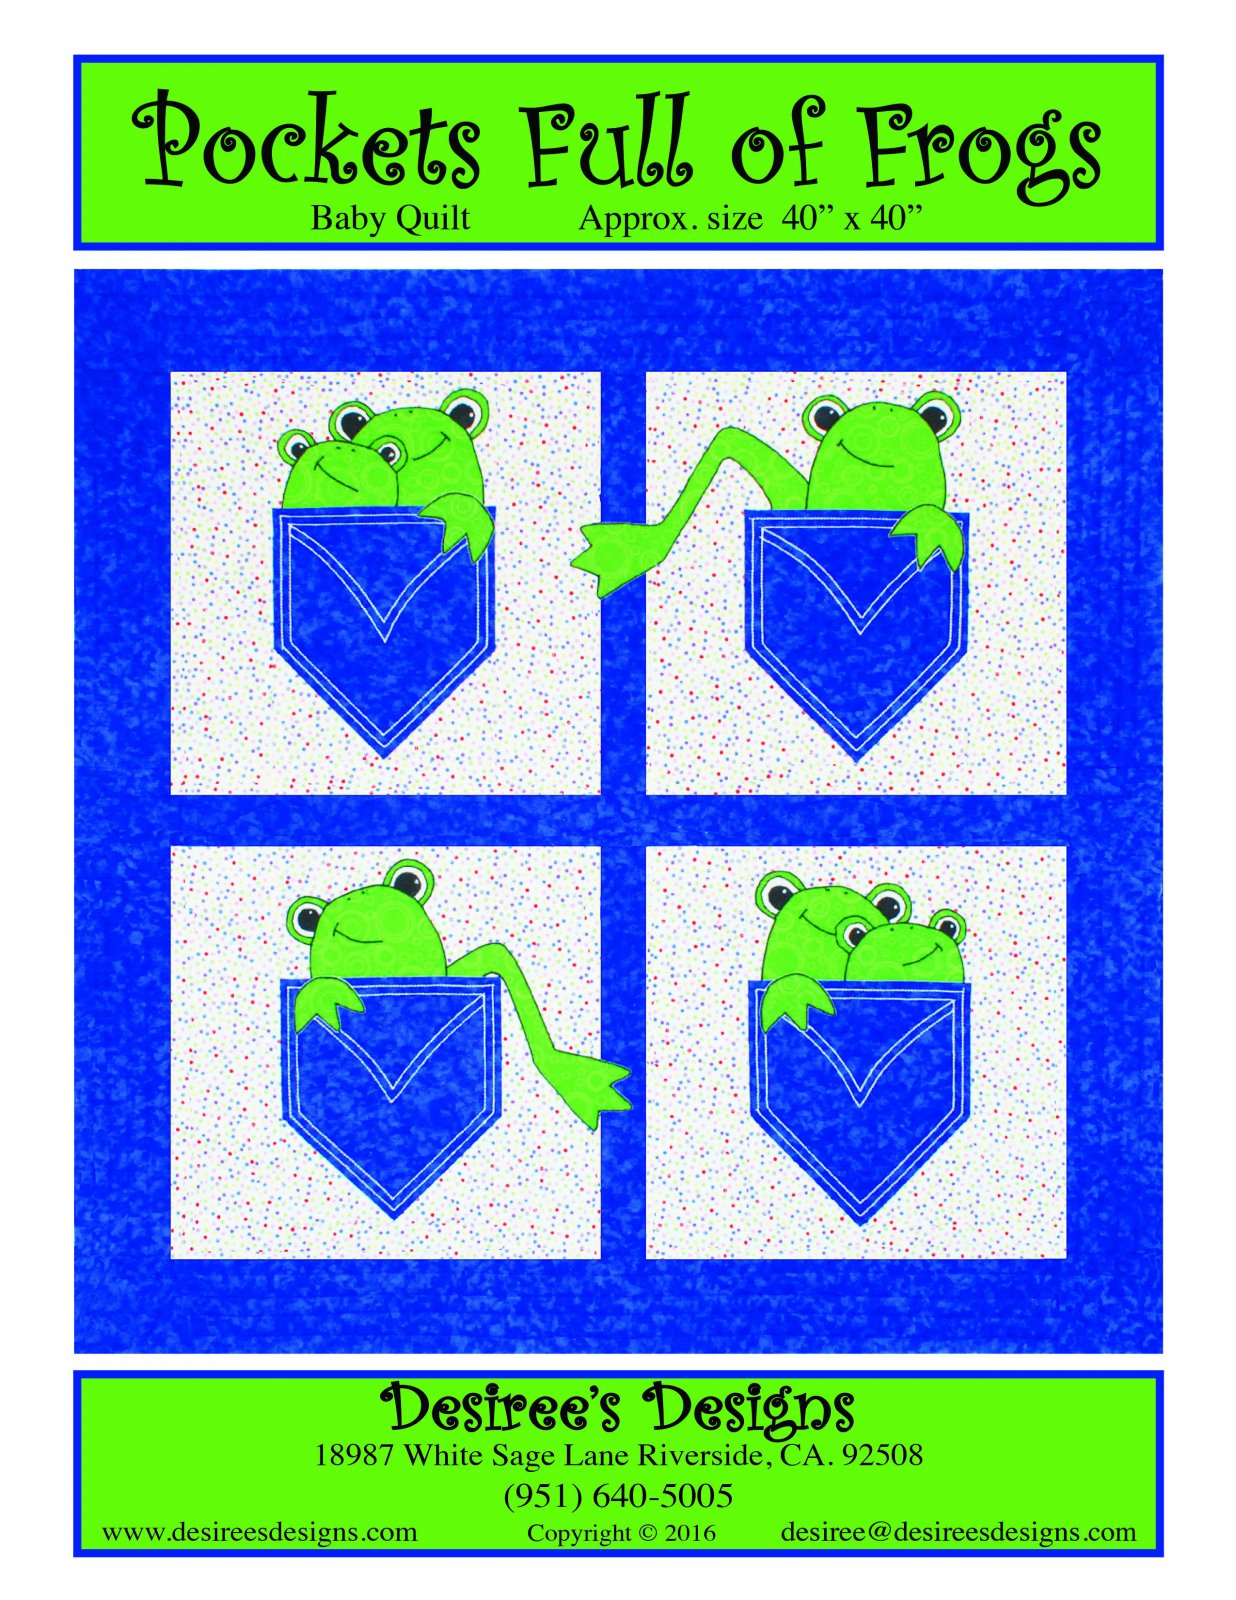 Pockets Full of Frogs E-pattern